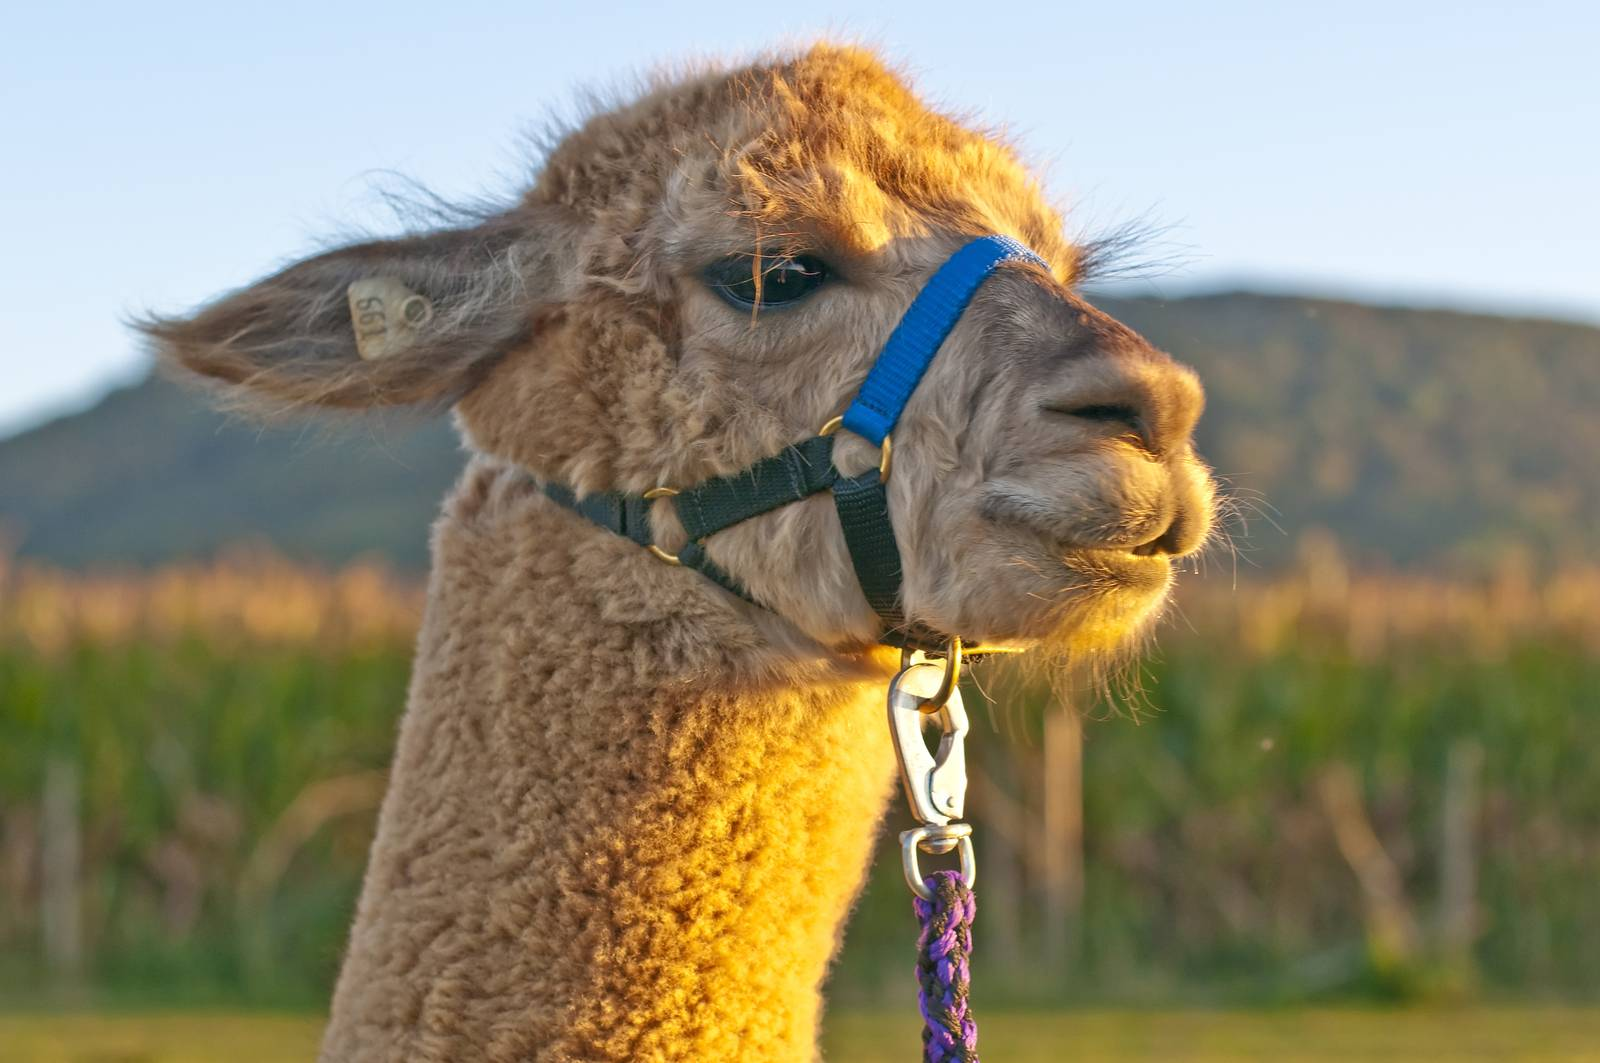 AAT, assisted animal therapy, adorable, alpaca, America, Andes - D34567006